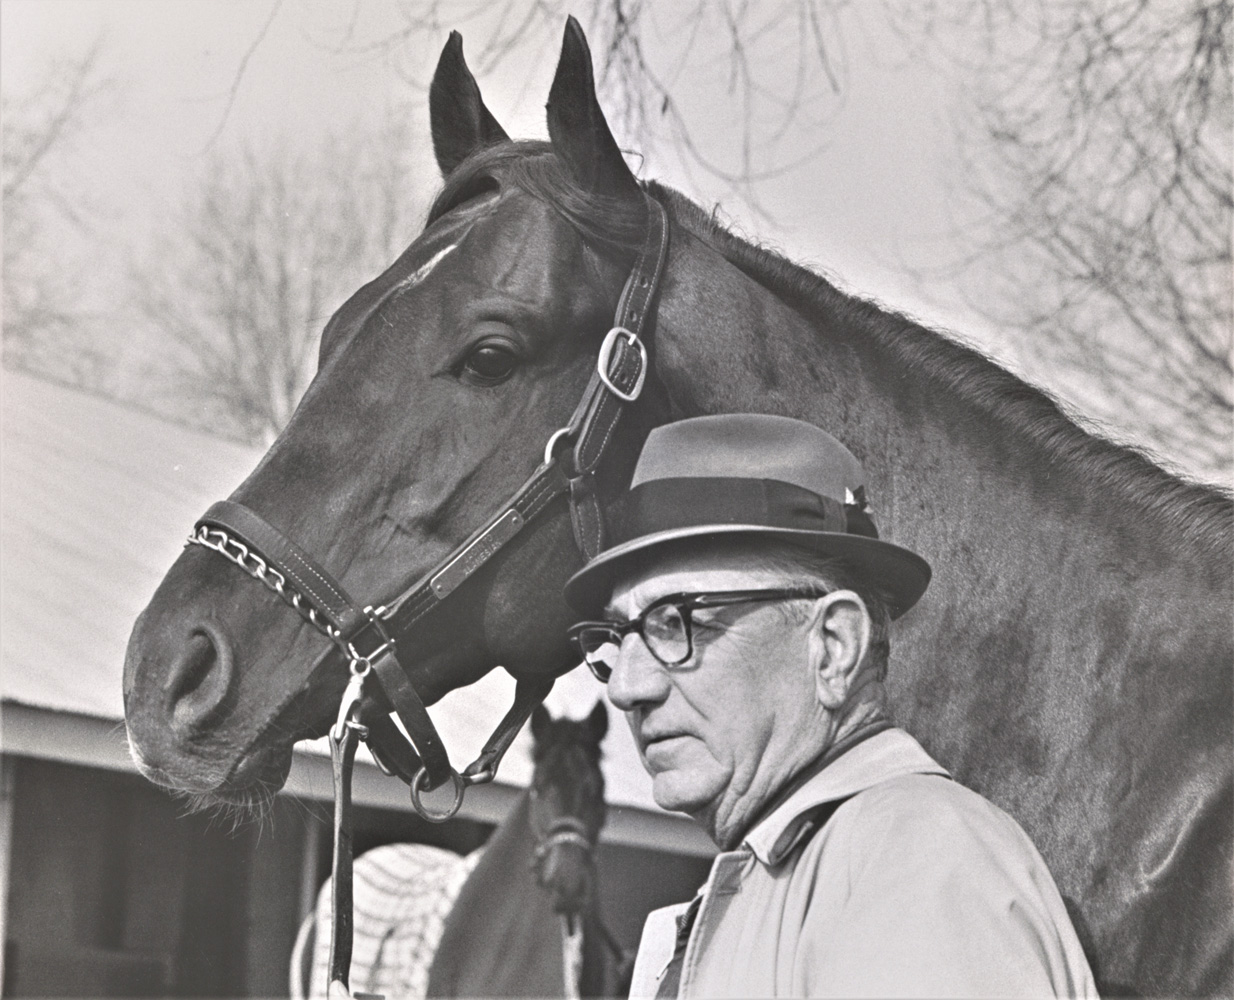 Henry Forrest with Jackal, undated (Keeneland Association)